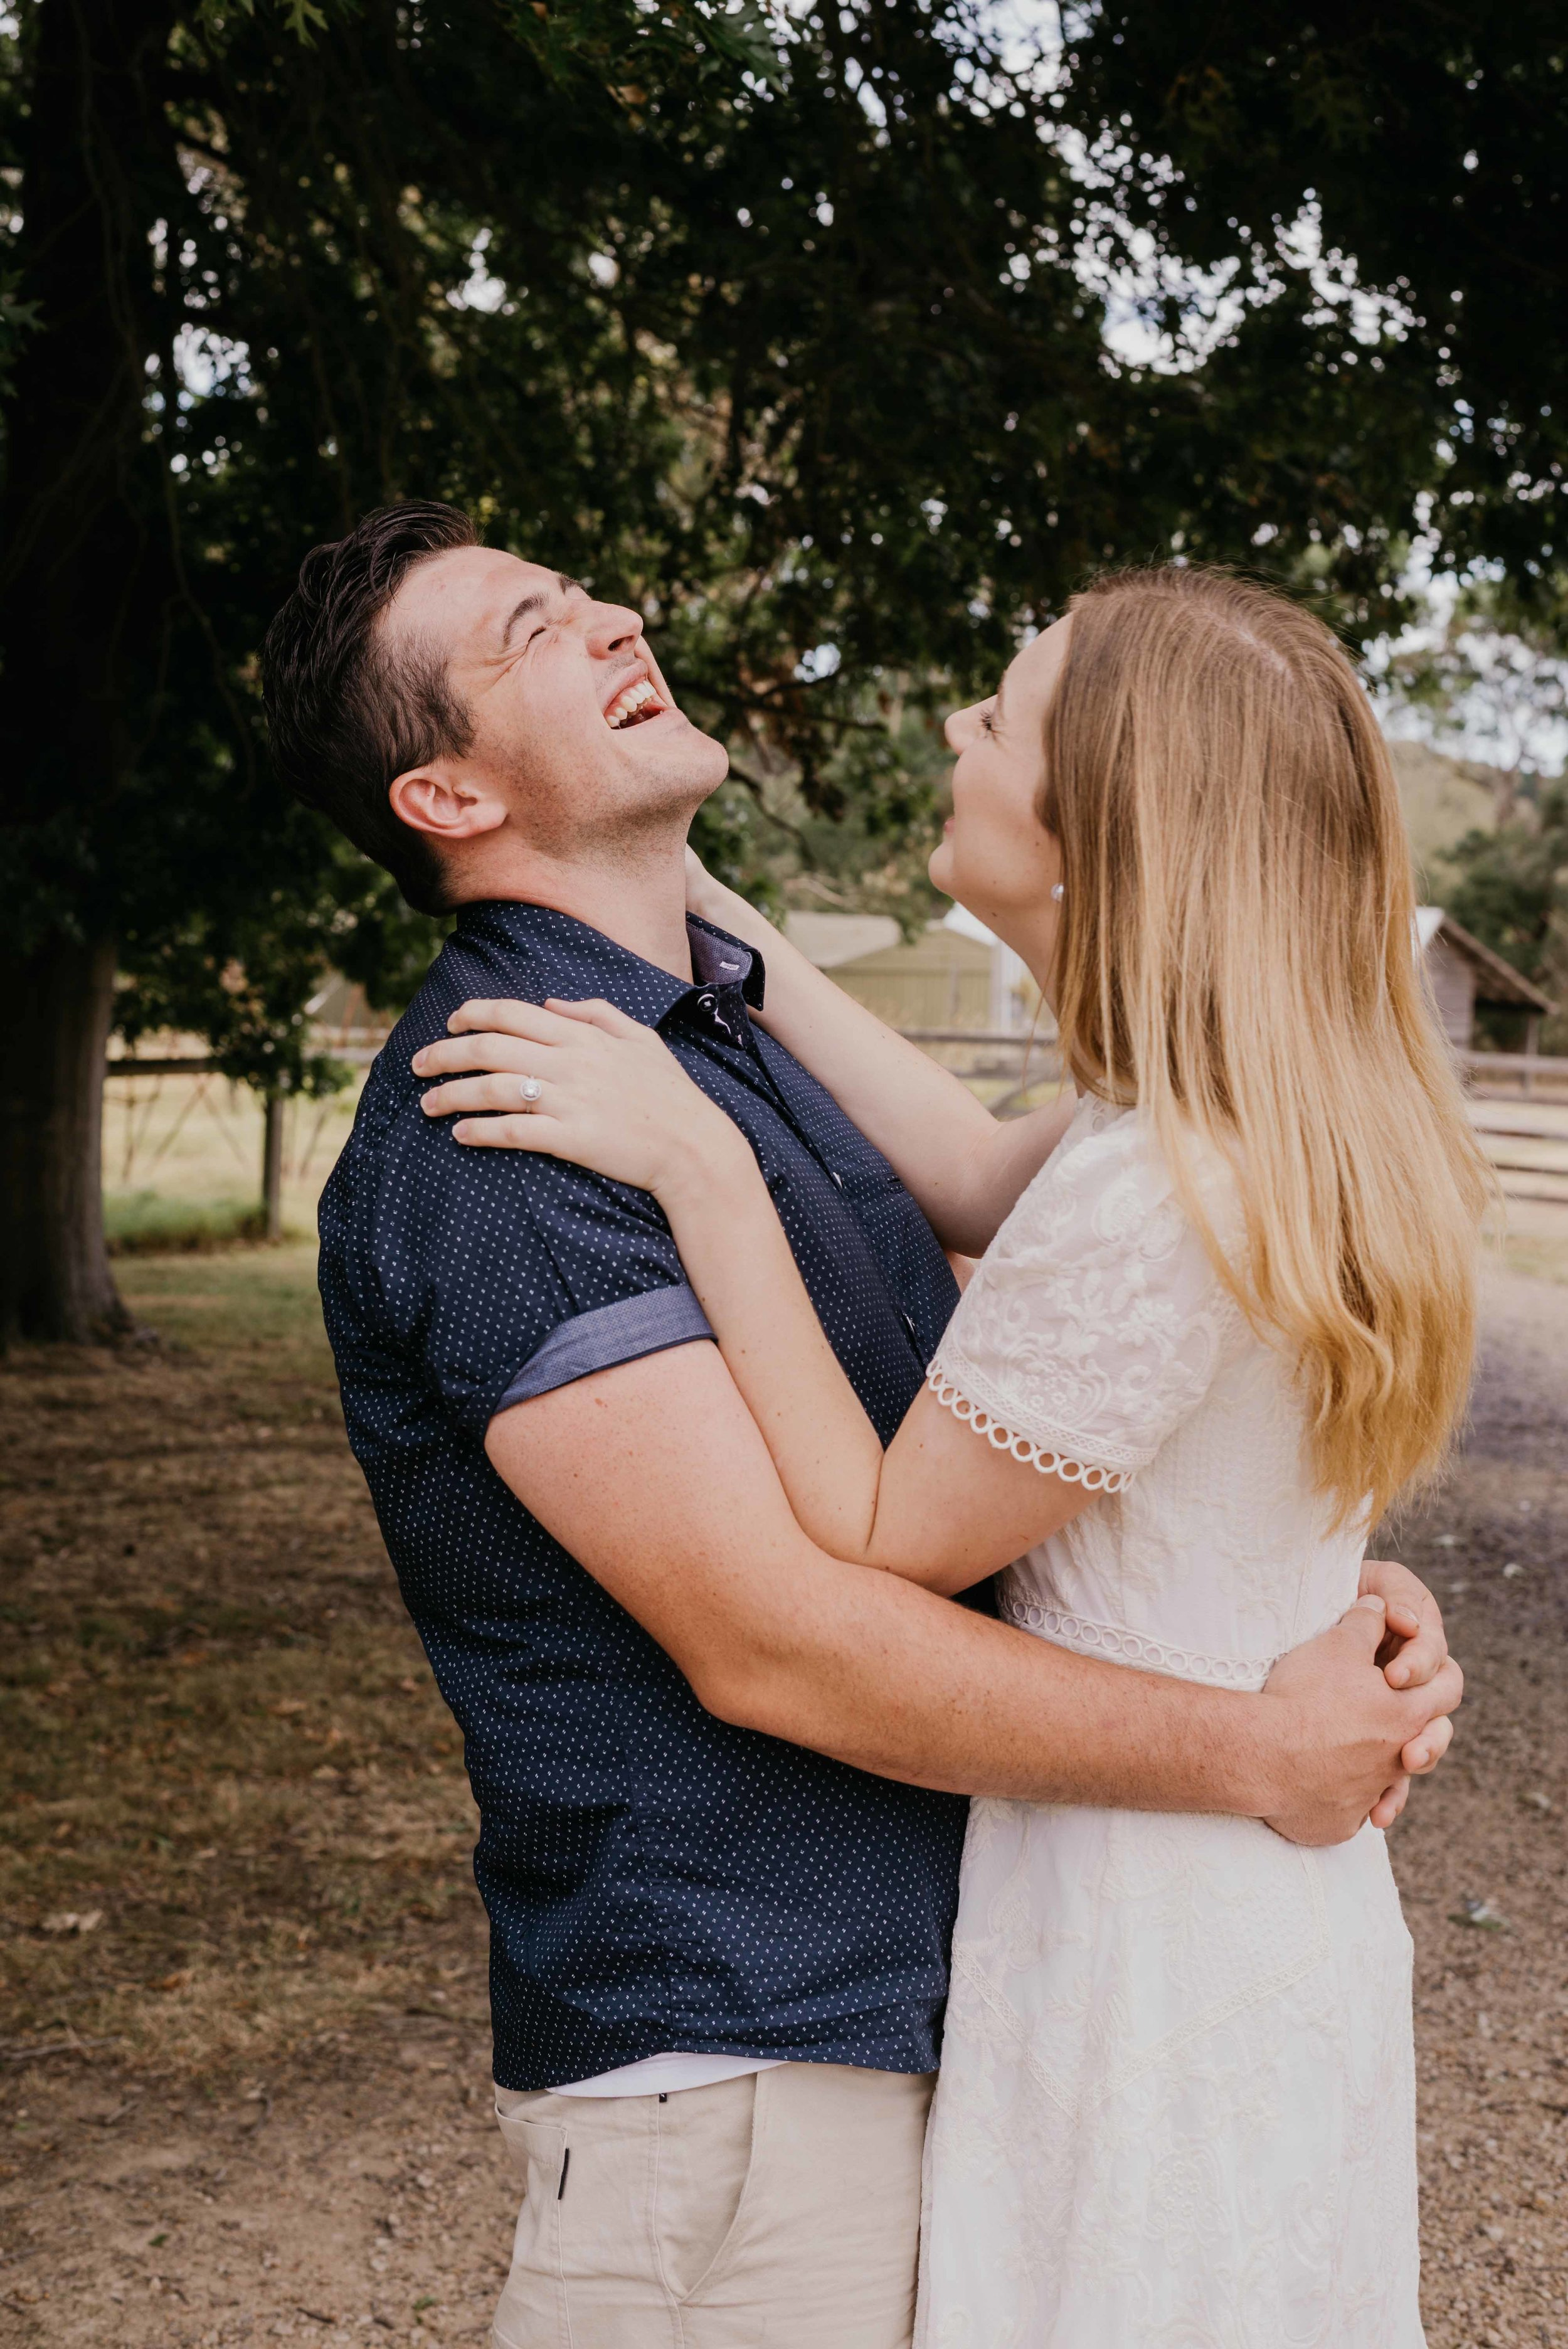 marissa-jade-photography-mornington-peninsula-wedding-photographer-natural-engagement-photography-red-hill-4.jpg